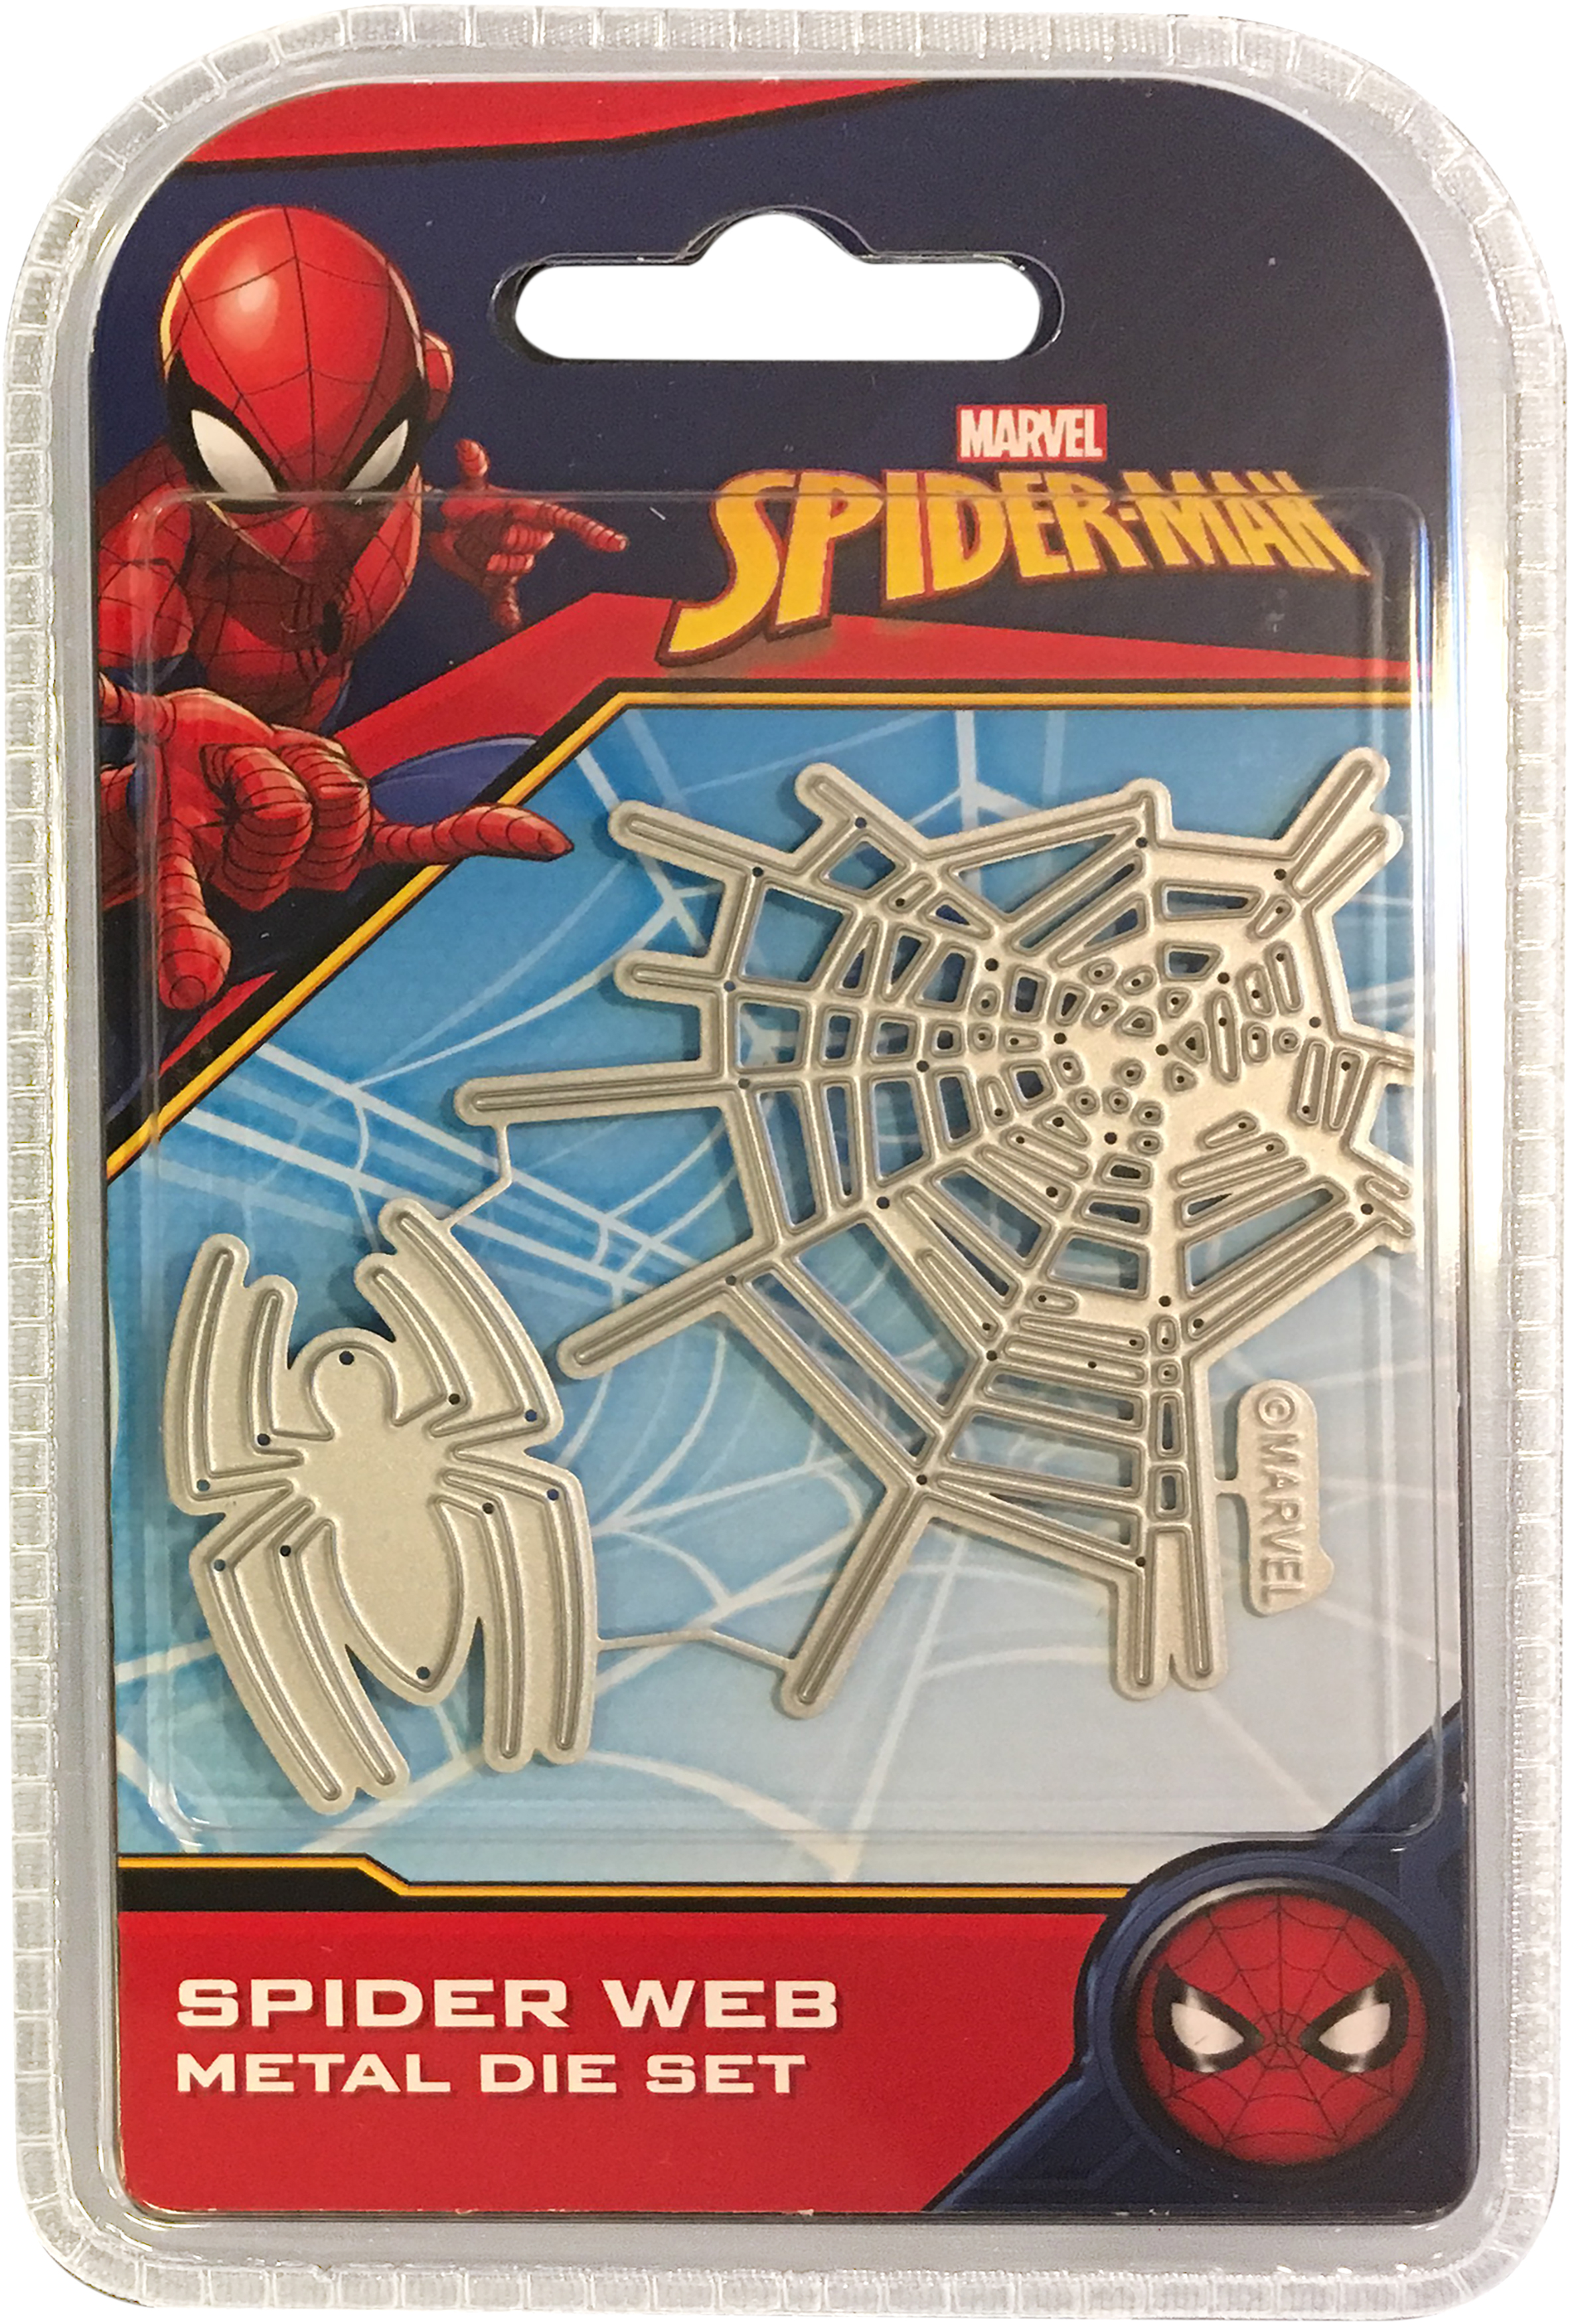 Spider Web - Marvel Spider Man Die Set